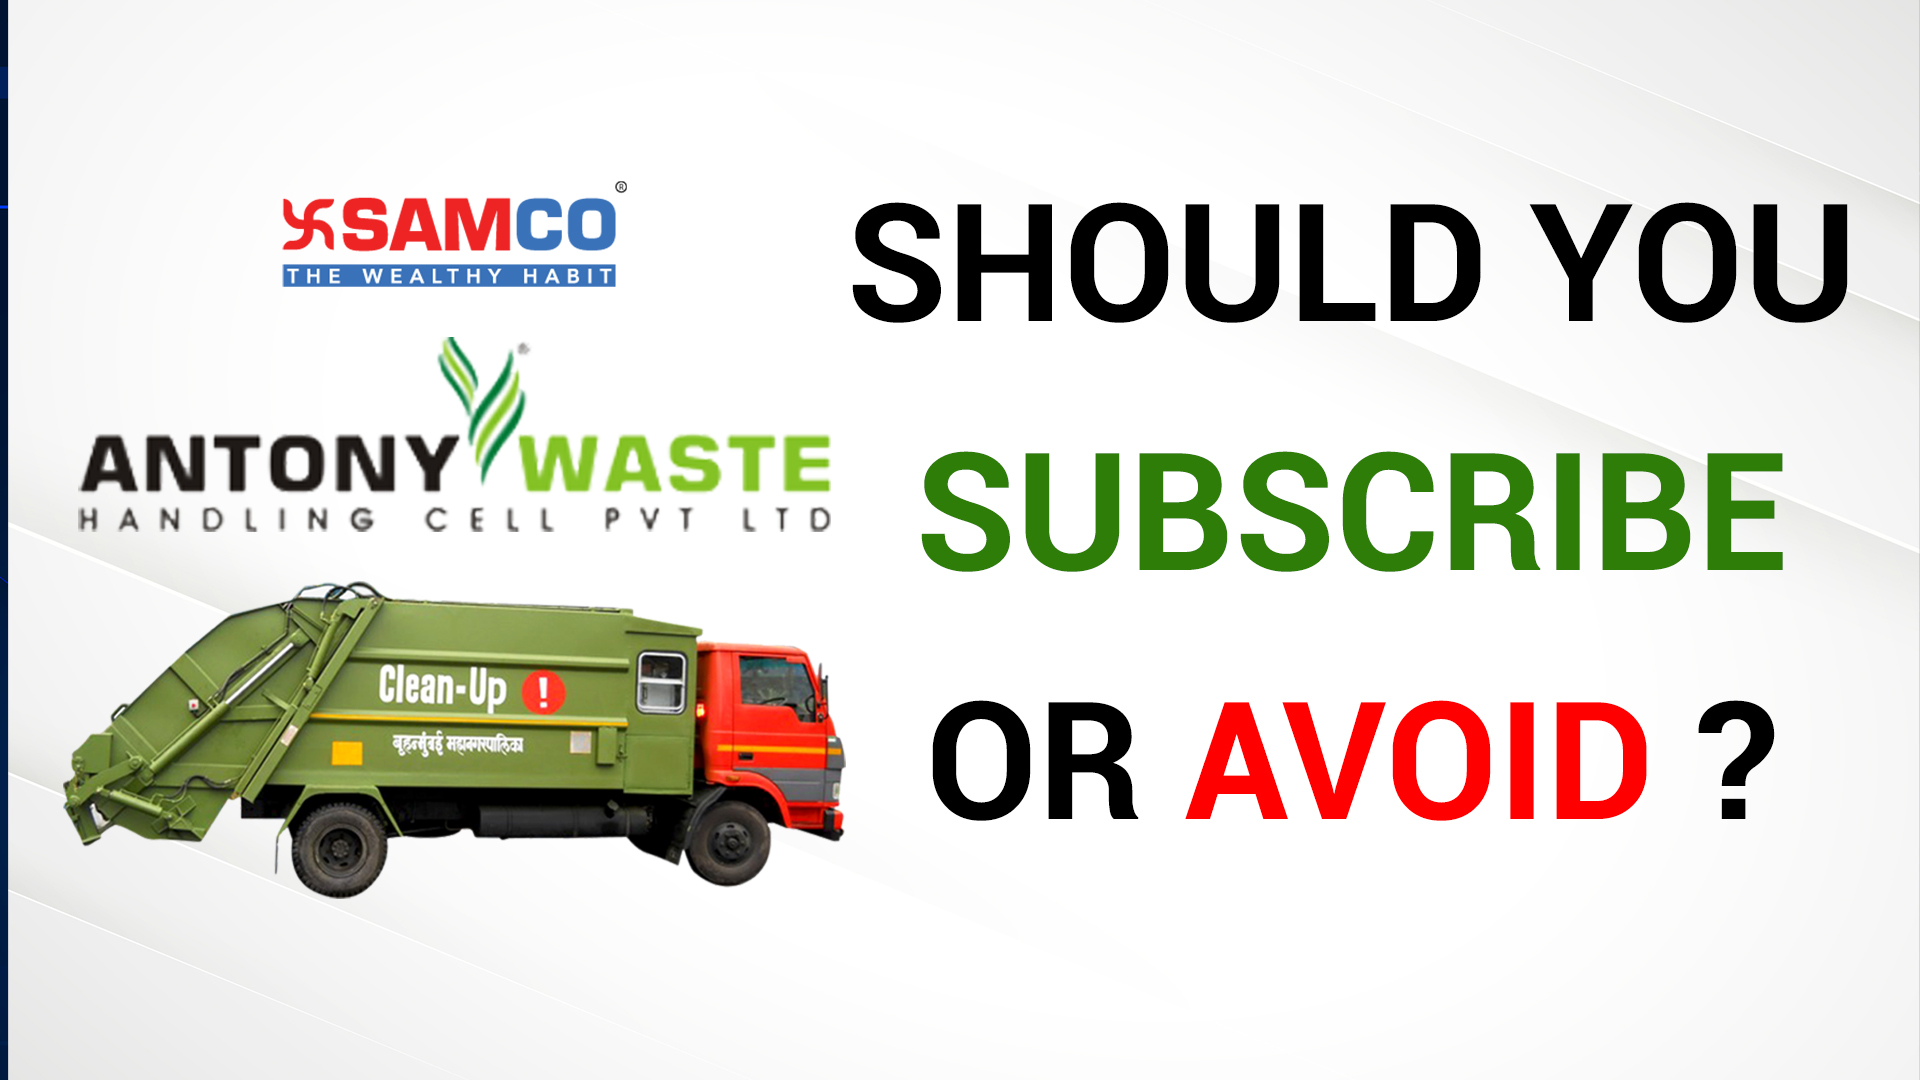 Antony Waste Management Should You Subscribe or Avoid